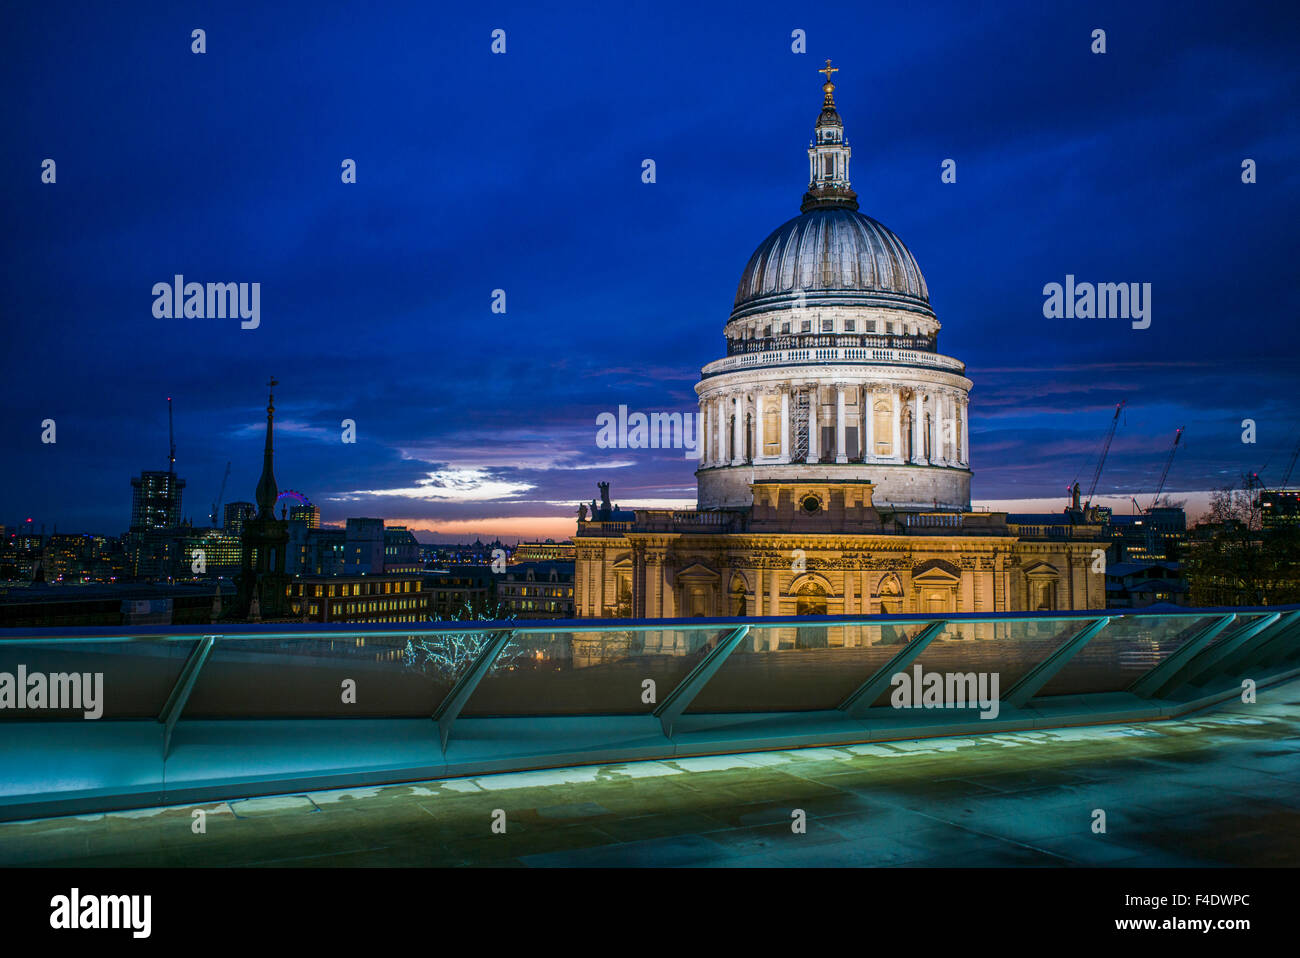 England, London, City, St. Paul's Cathedral from One New Change, dusk Stock Photo